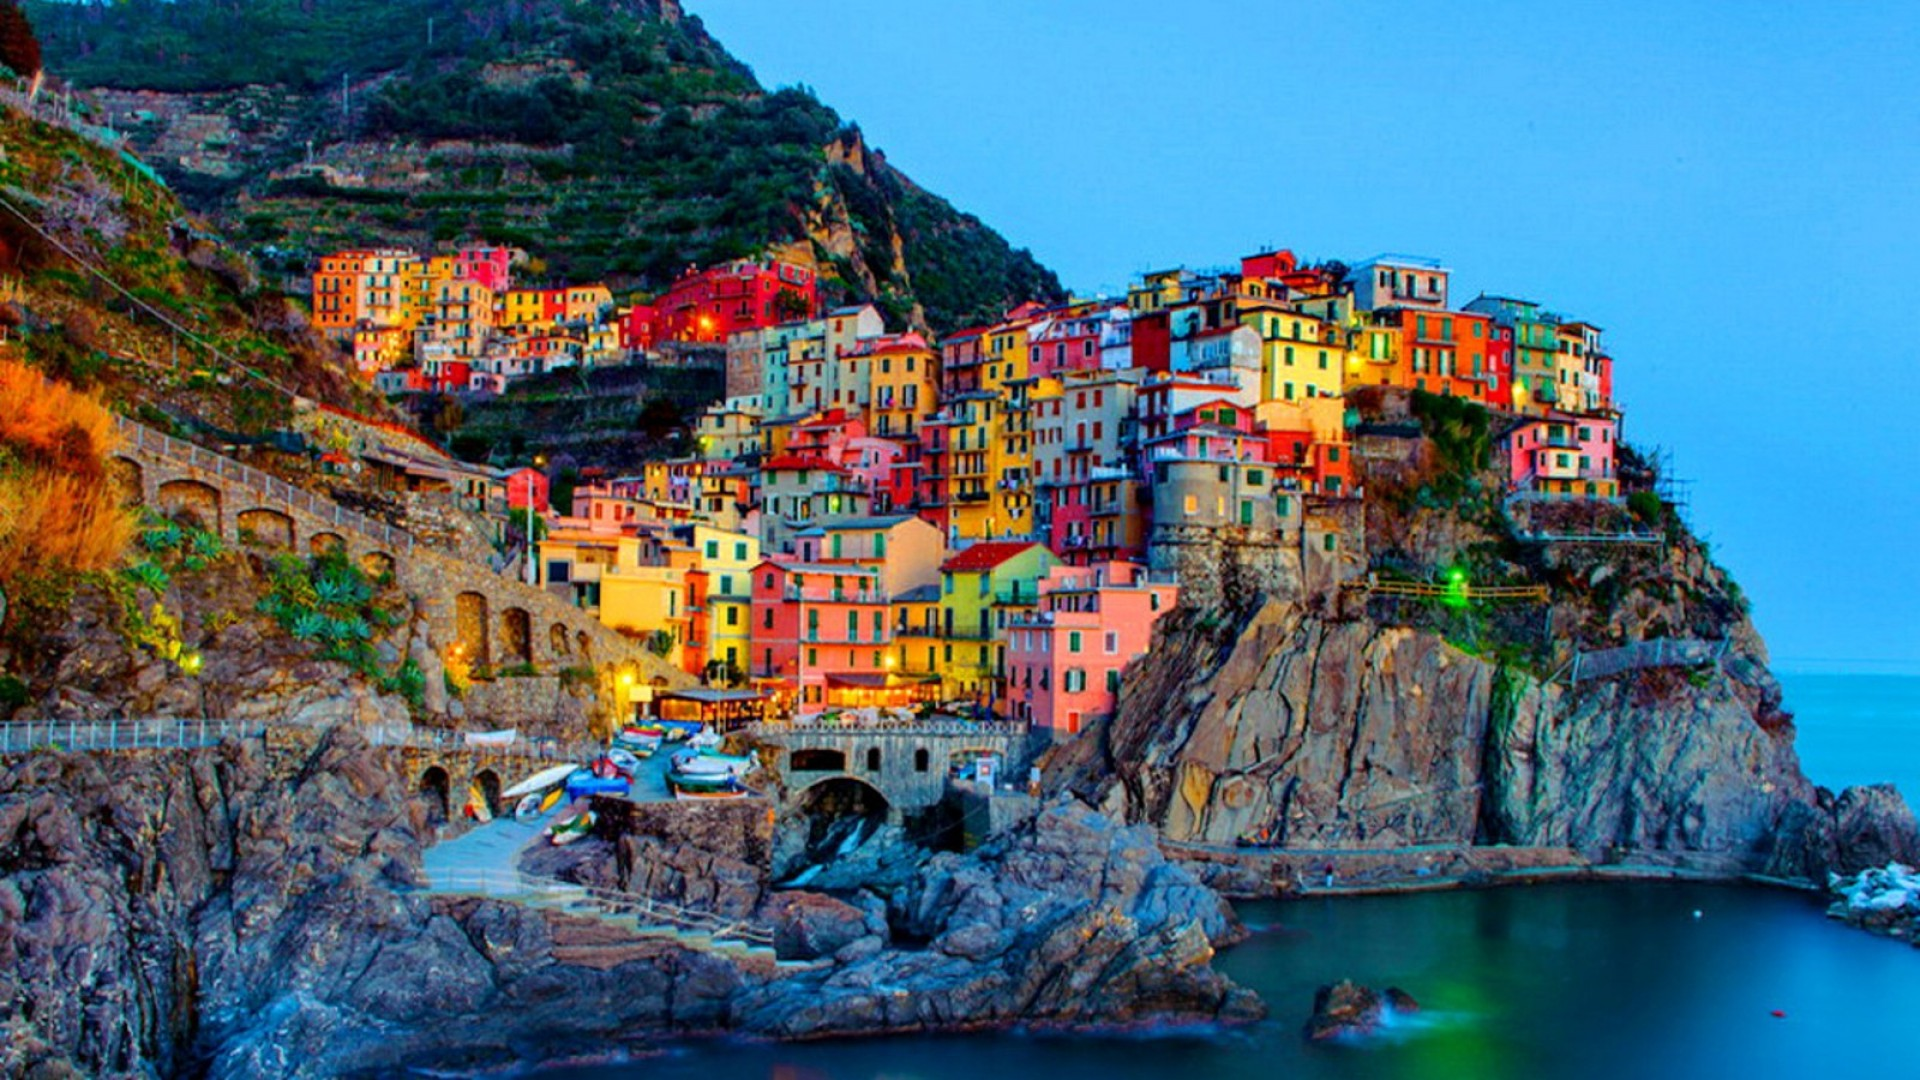 Wallpapers Of Italy Italy Wallpapers Best Wallpapers